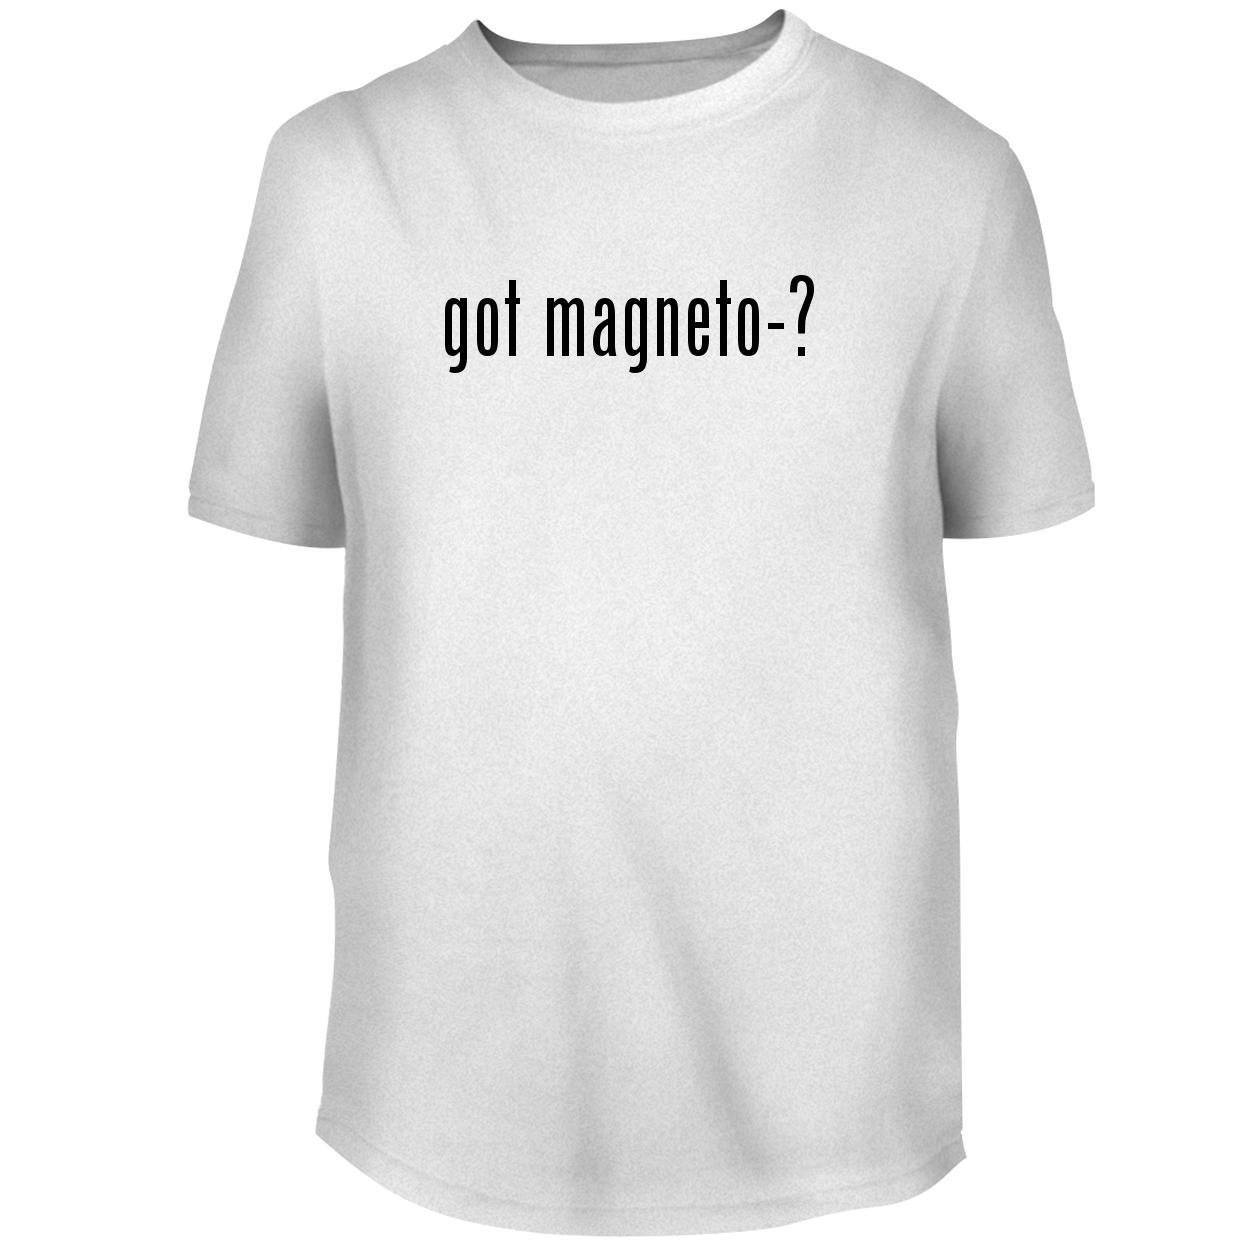 BH Cool Designs got Magneto-? - Men's Graphic Tee, White, X-Large